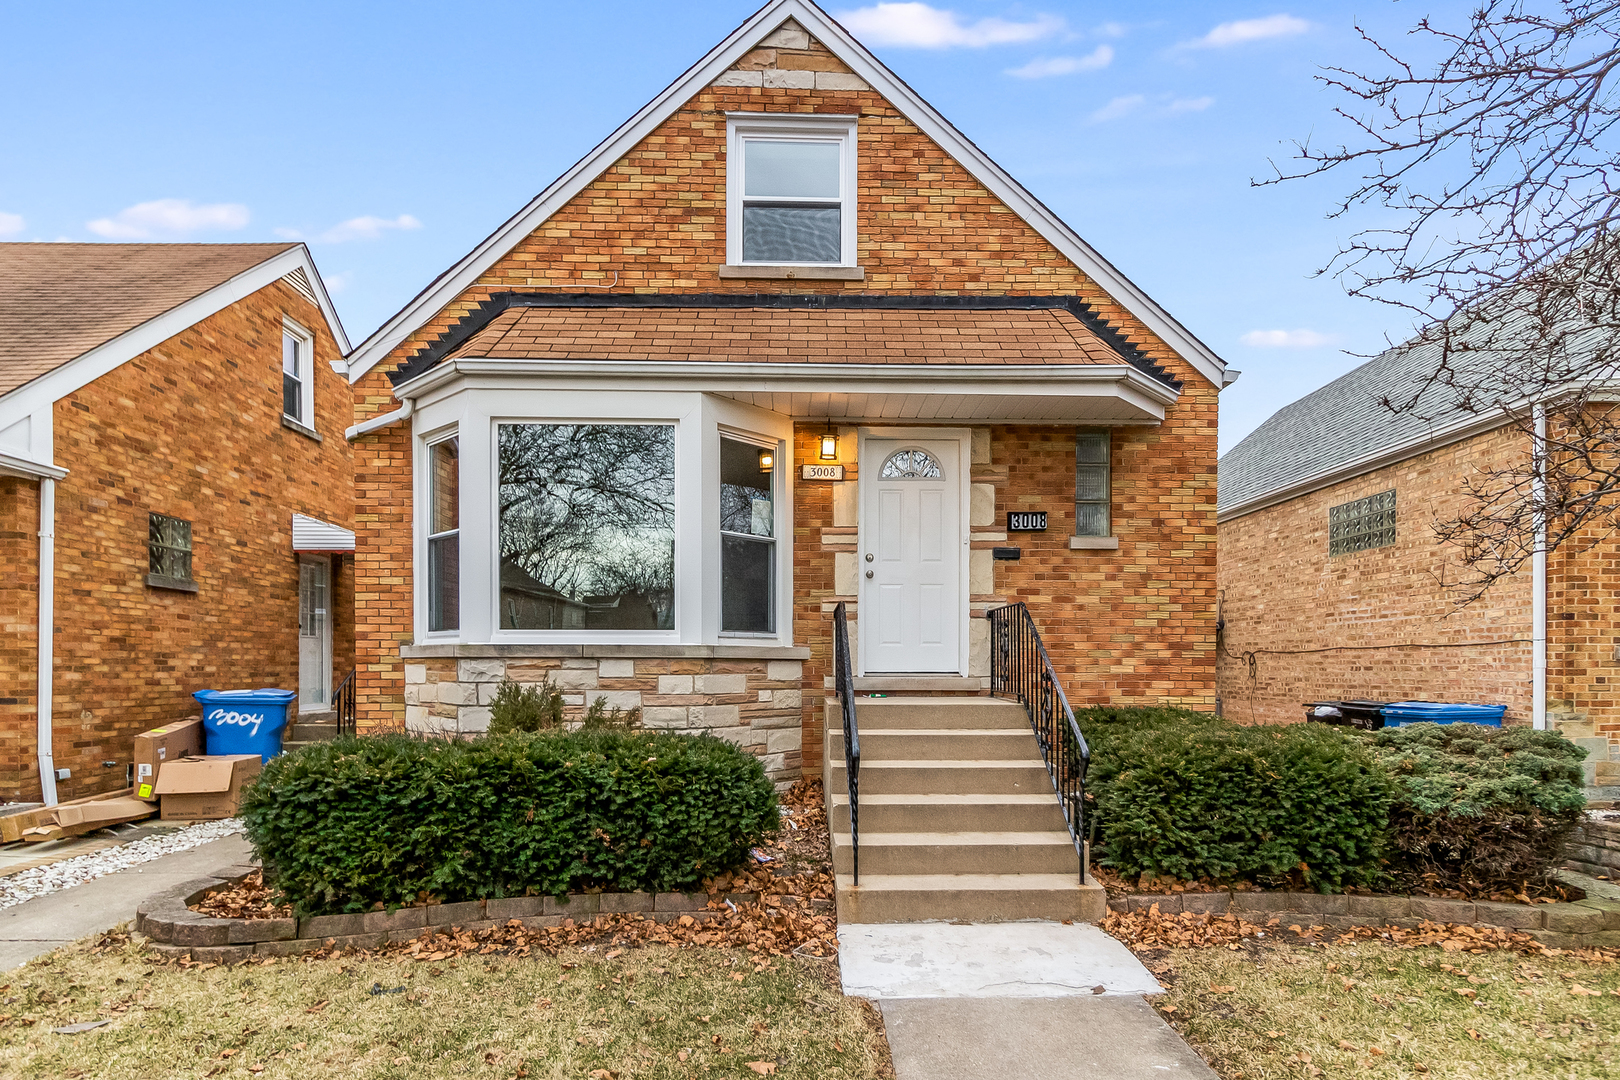 3008 N ODELL Avenue, Chicago IL 60707